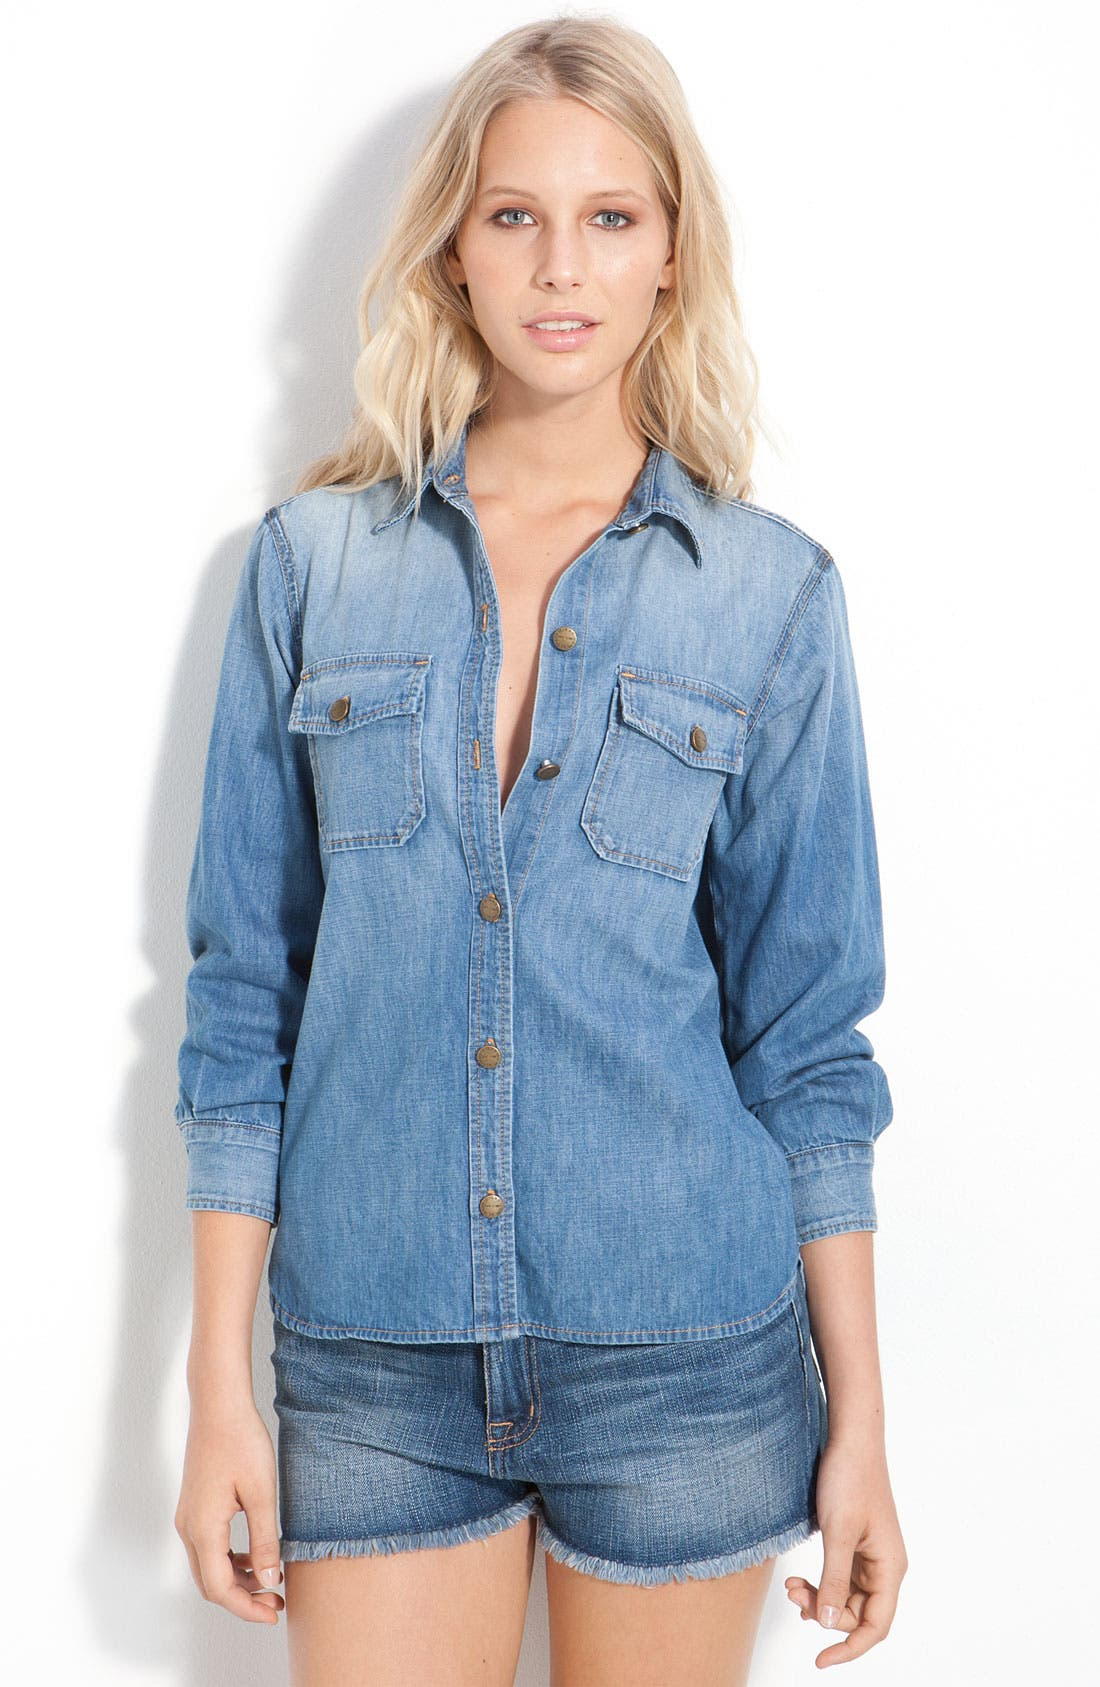 Alternate Image 1 Selected - Current/Elliott 'The Perfect' Denim Shirt